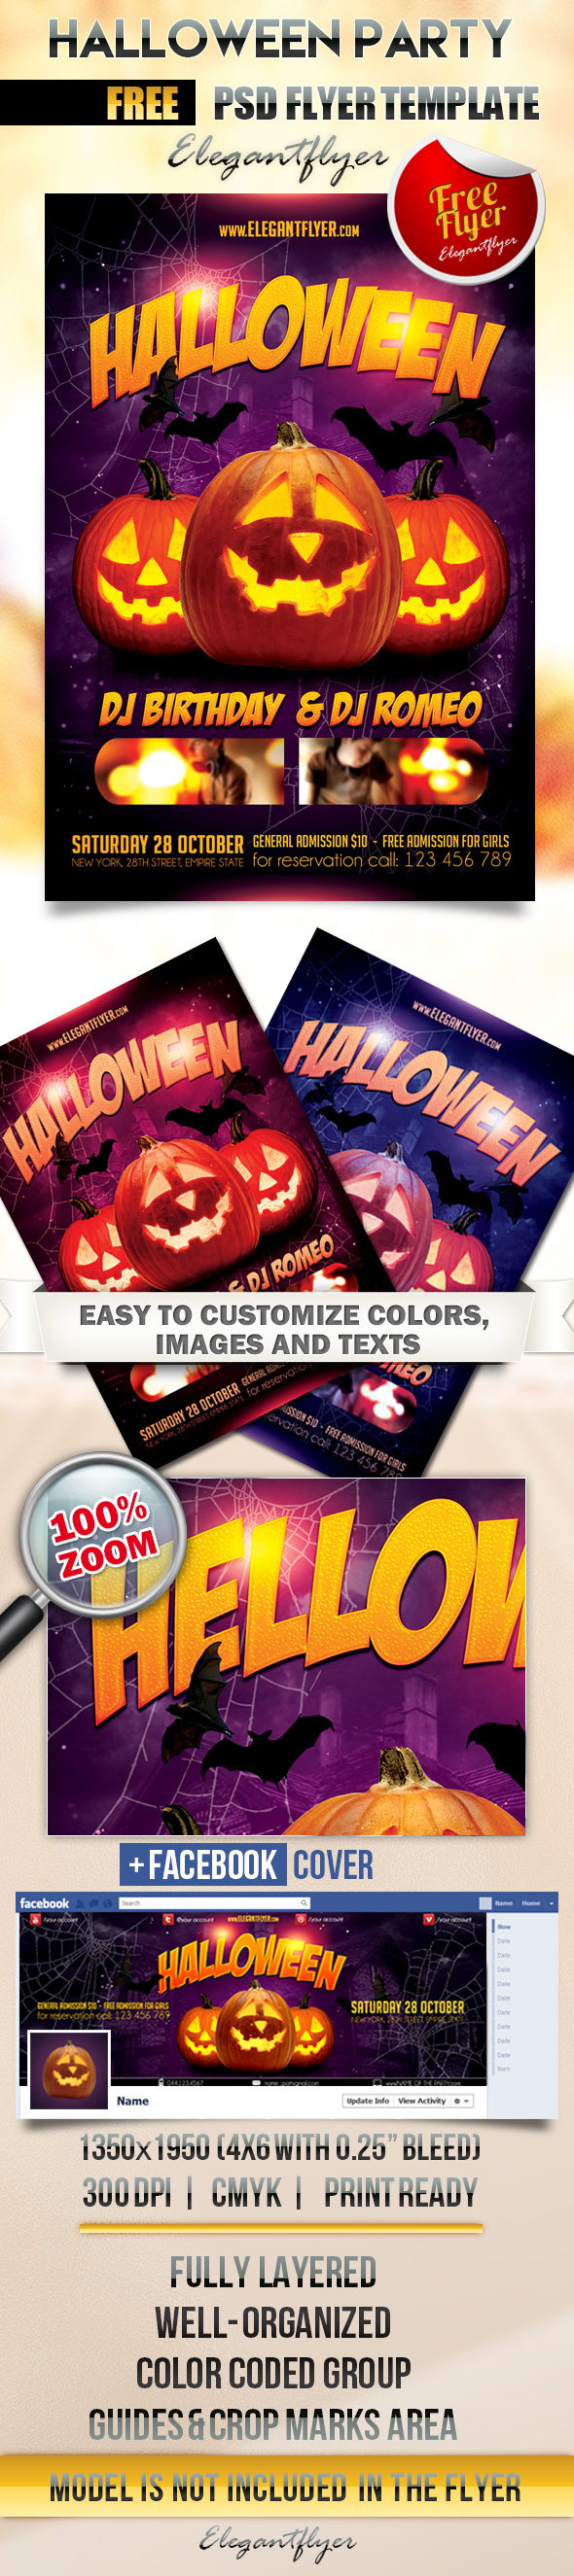 Bigpreview_Halowwen_party_free-flyer-psd-template-facebook-cover3